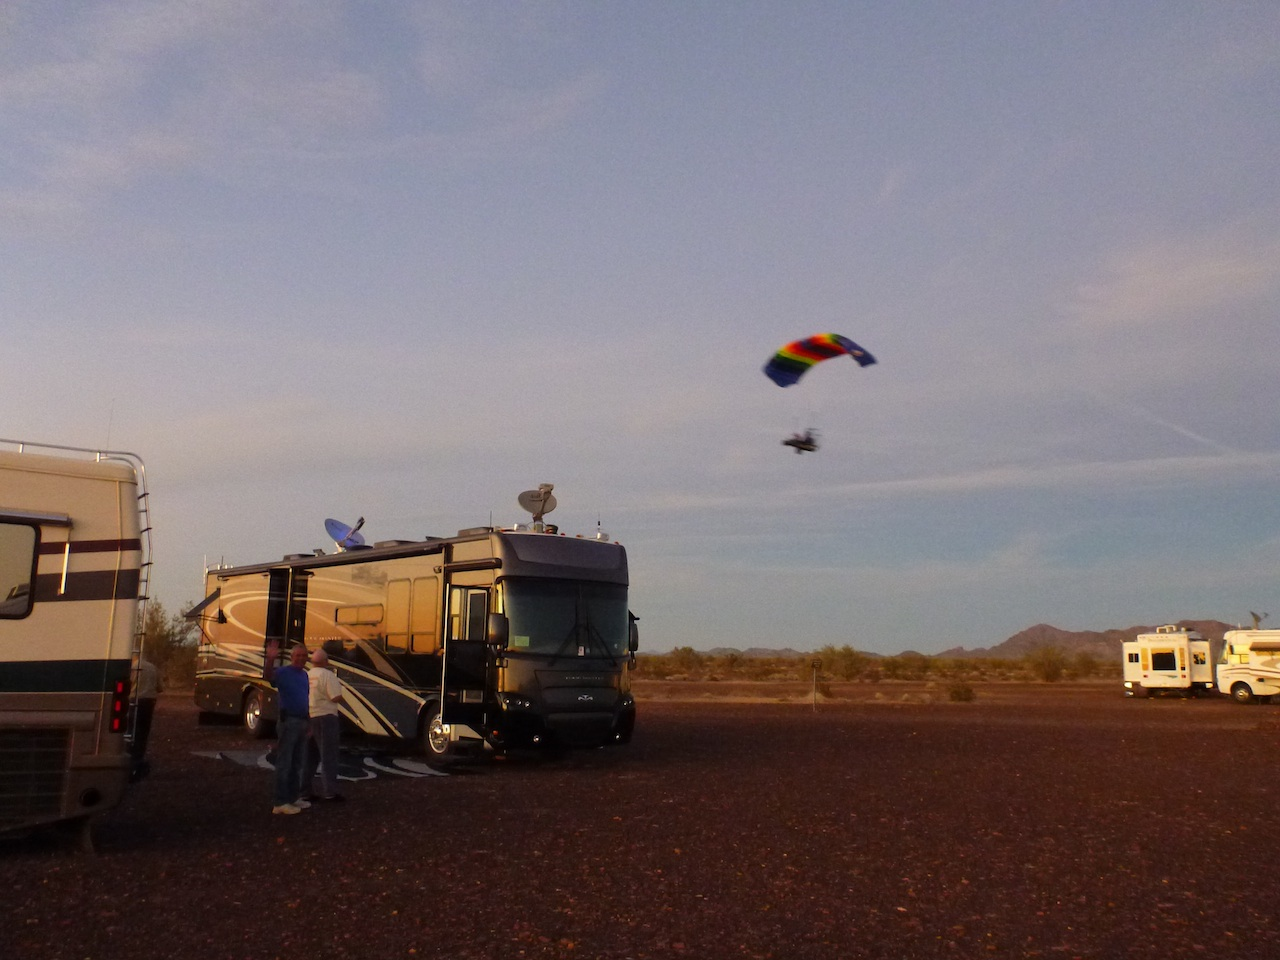 People Flying In Their Powered Parachute Over Our Coach